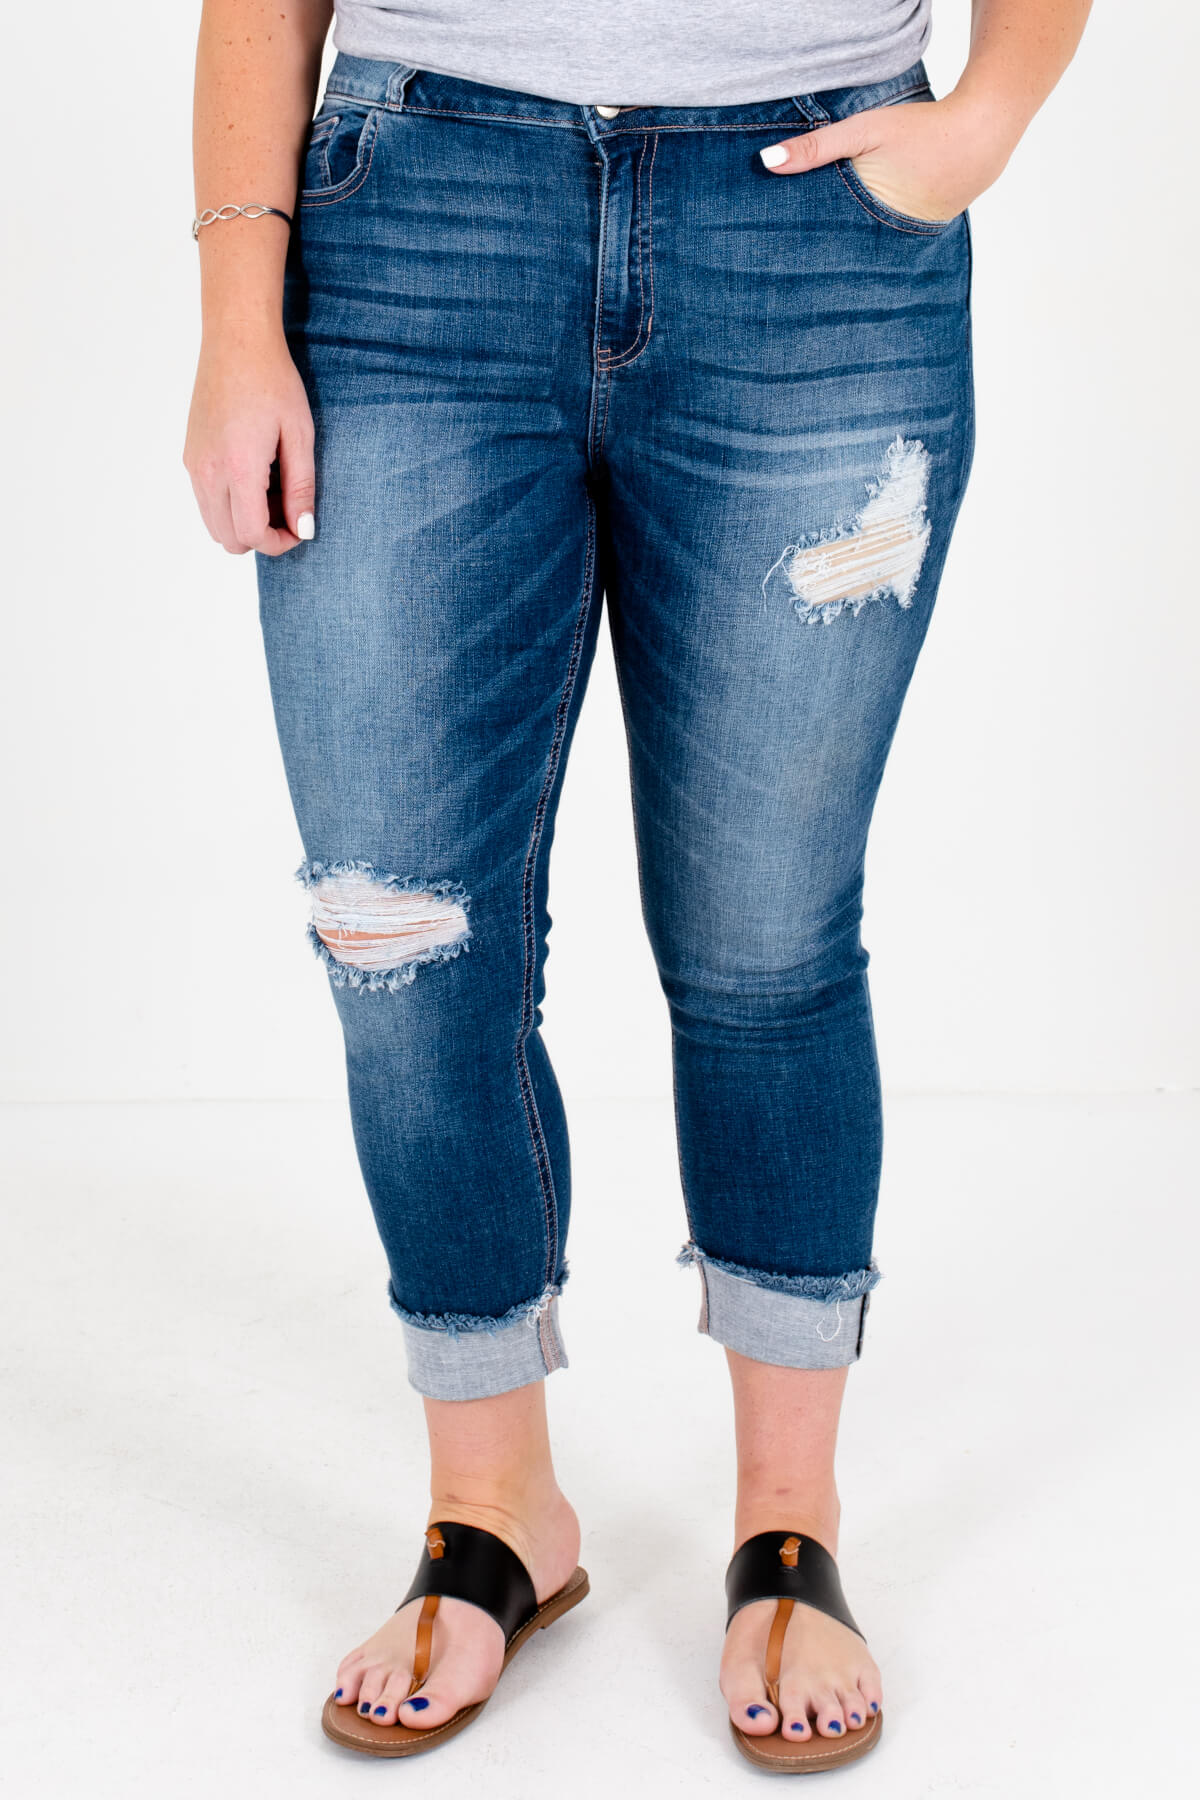 Medium Wash Blue Denim Distressed Detailing Boutique Plus Size Jeans for Women